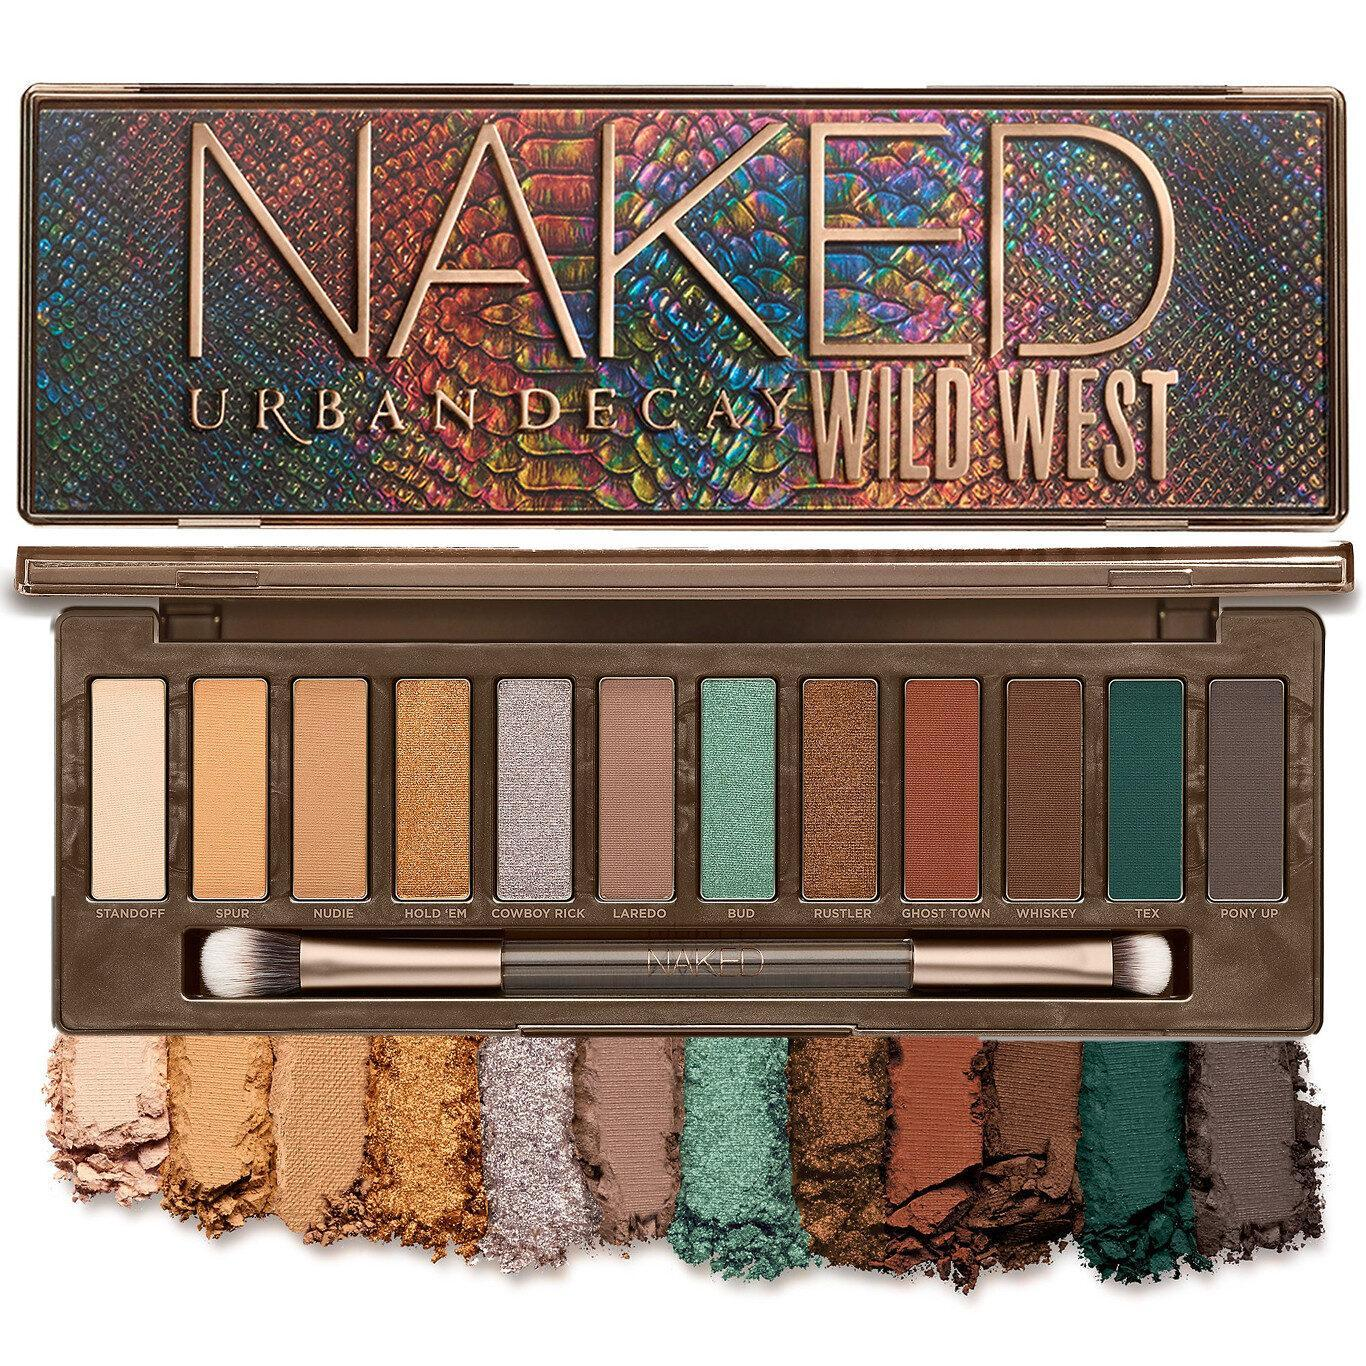 Urban Decay Naked Wild West Eyeshadow Palette Open, Closed & Crash Swatches